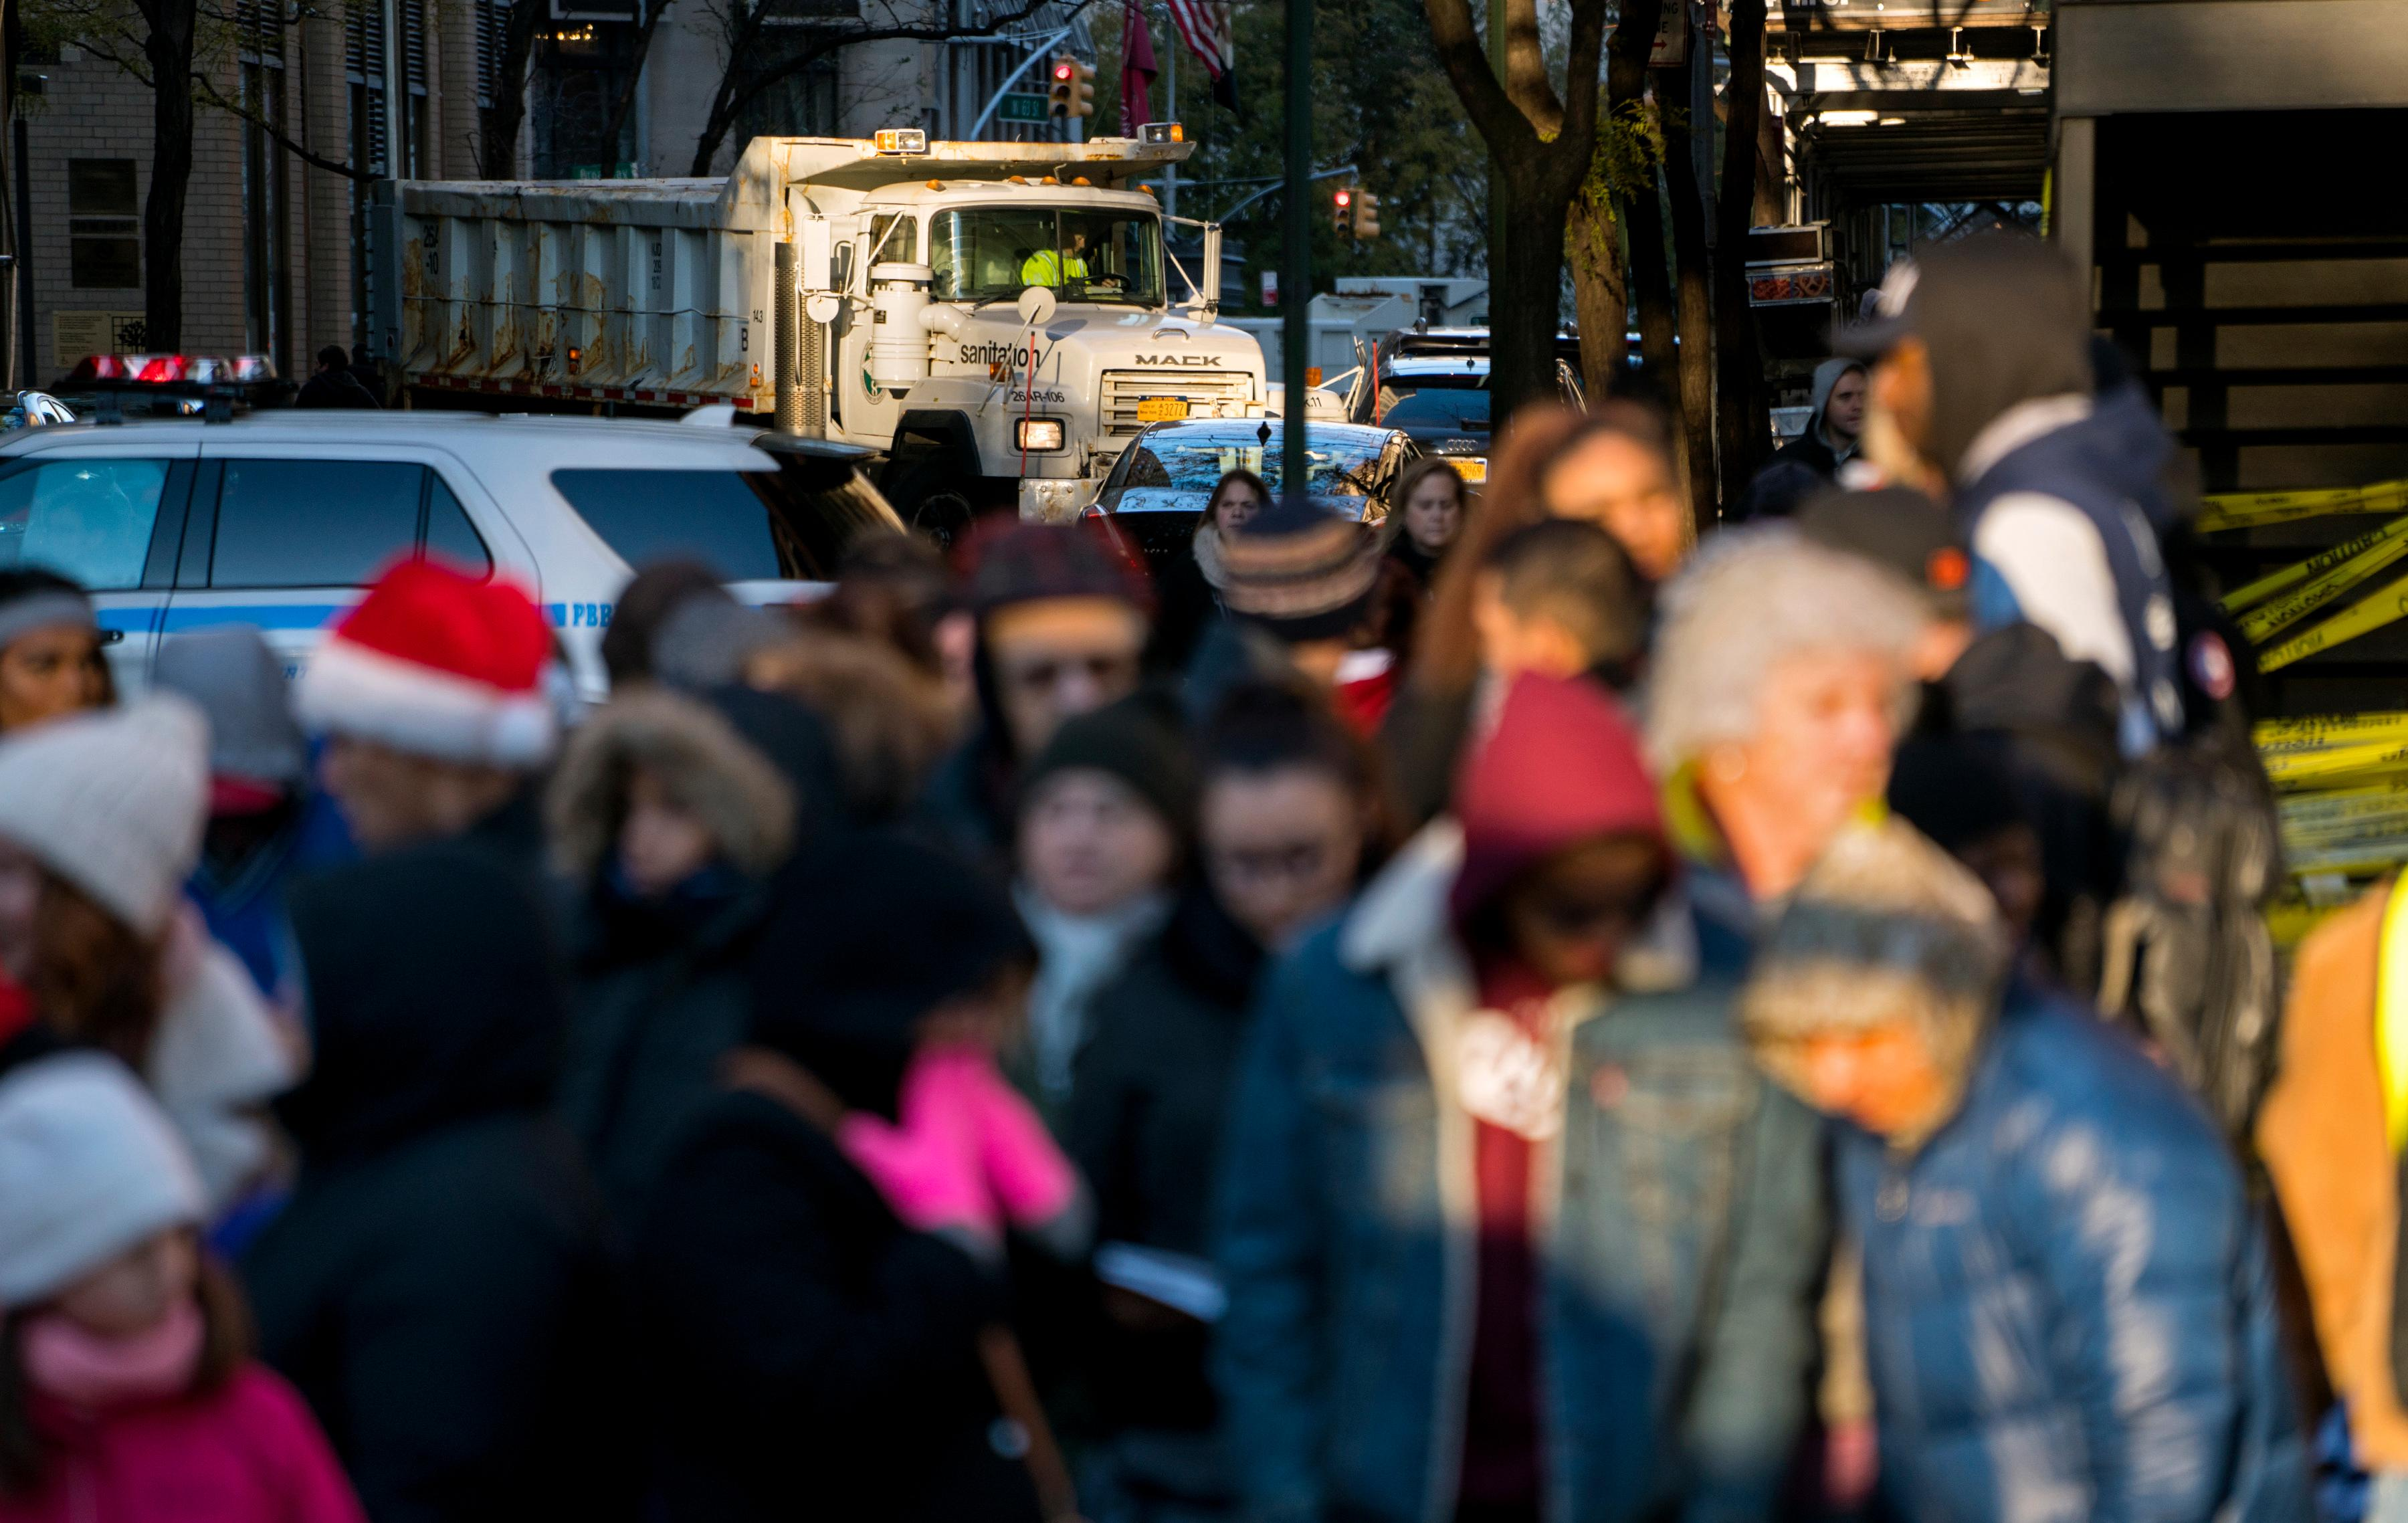 A large truck full of sand blocks a side street as people wait for the start of the Macy's Thanksgiving Day Parade in New York, Thursday, Nov. 23, 2017. (AP Photo/Craig Ruttle)